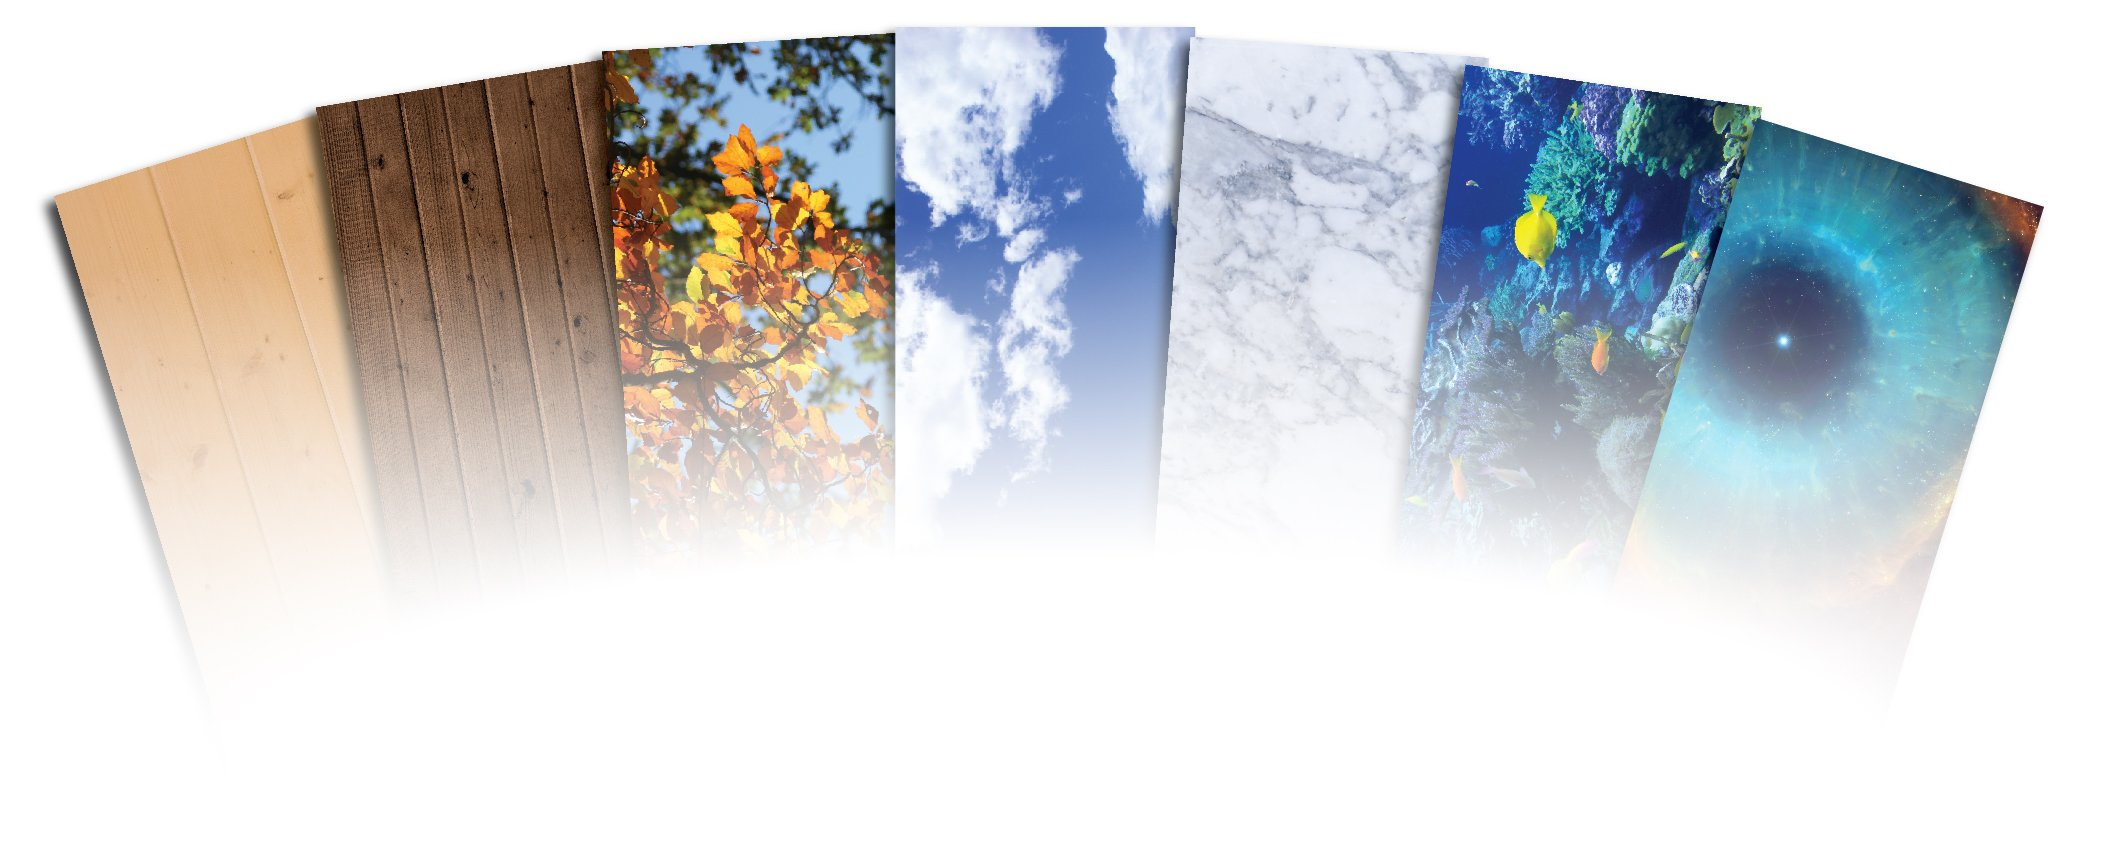 Ceiling Tile Skin - Forest Canopy 2 Kit 2x4 Grid Glue Up Decorative Panel Cover Wrap (6pc Long)